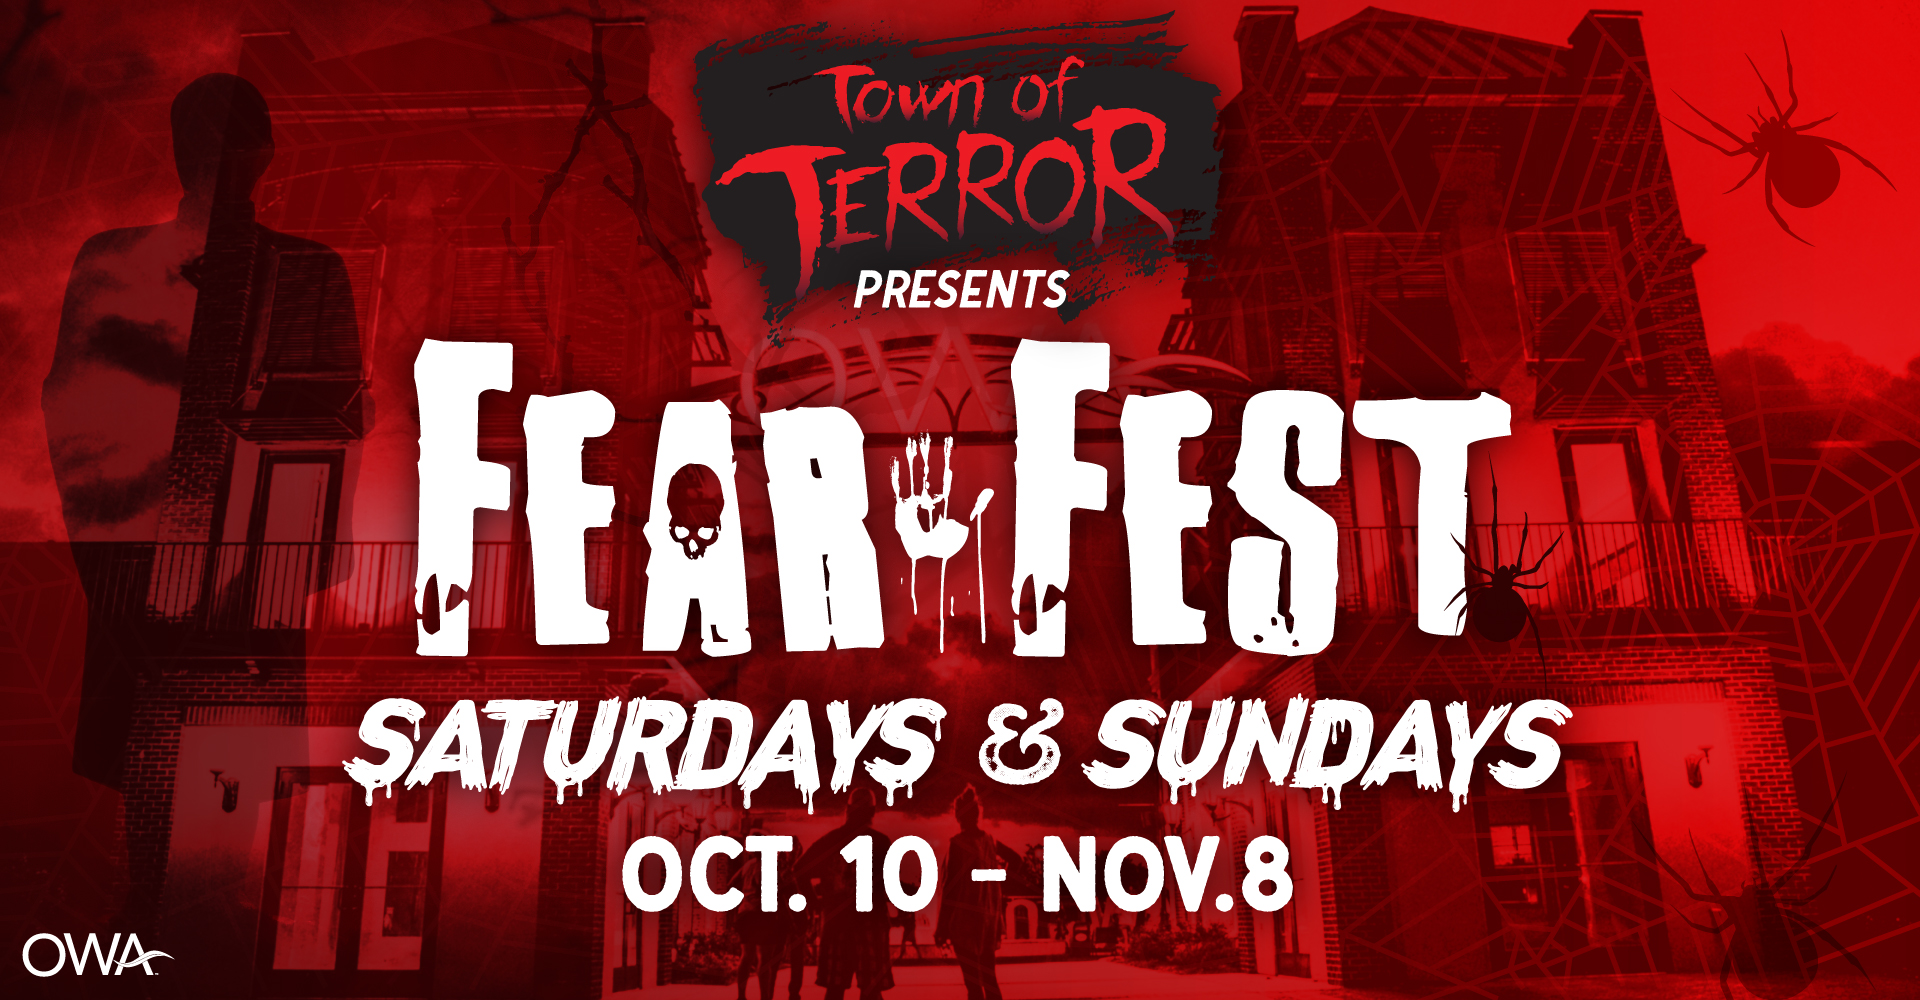 Town of Terror presents FEAR FEST